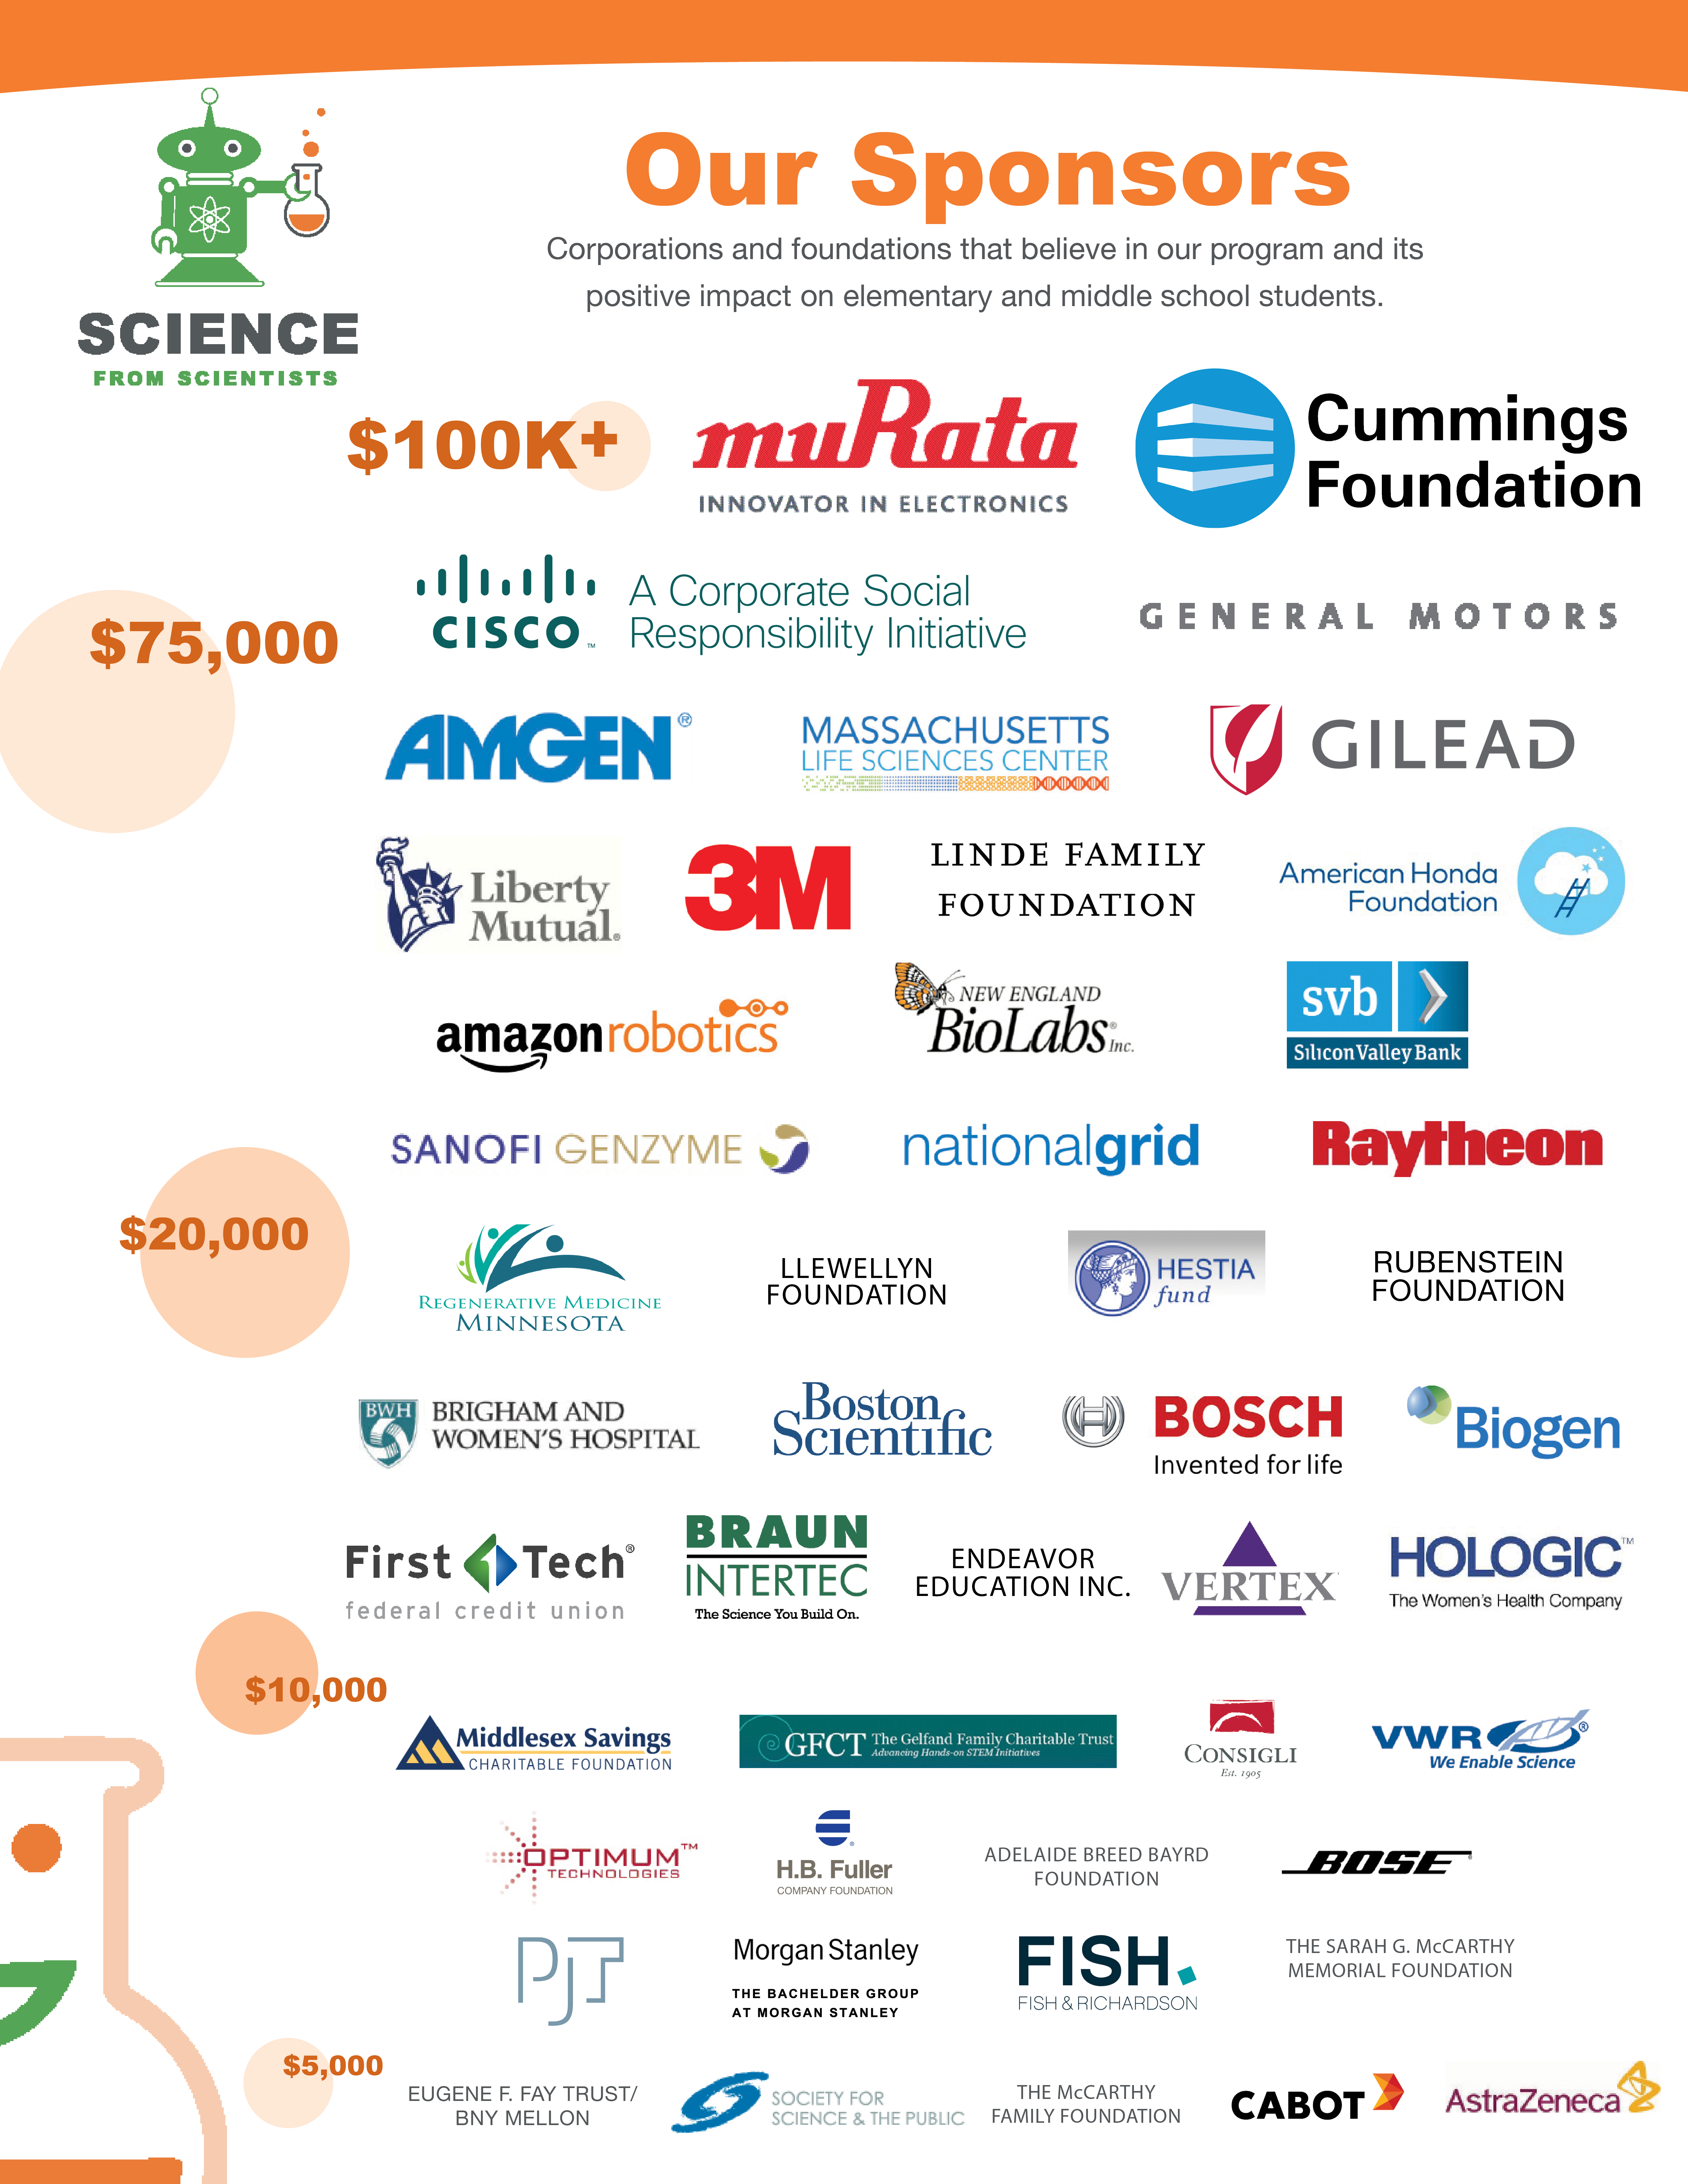 Listing of companies who donated to Science from Scientists with levels of donation listed on the left side of the picture.